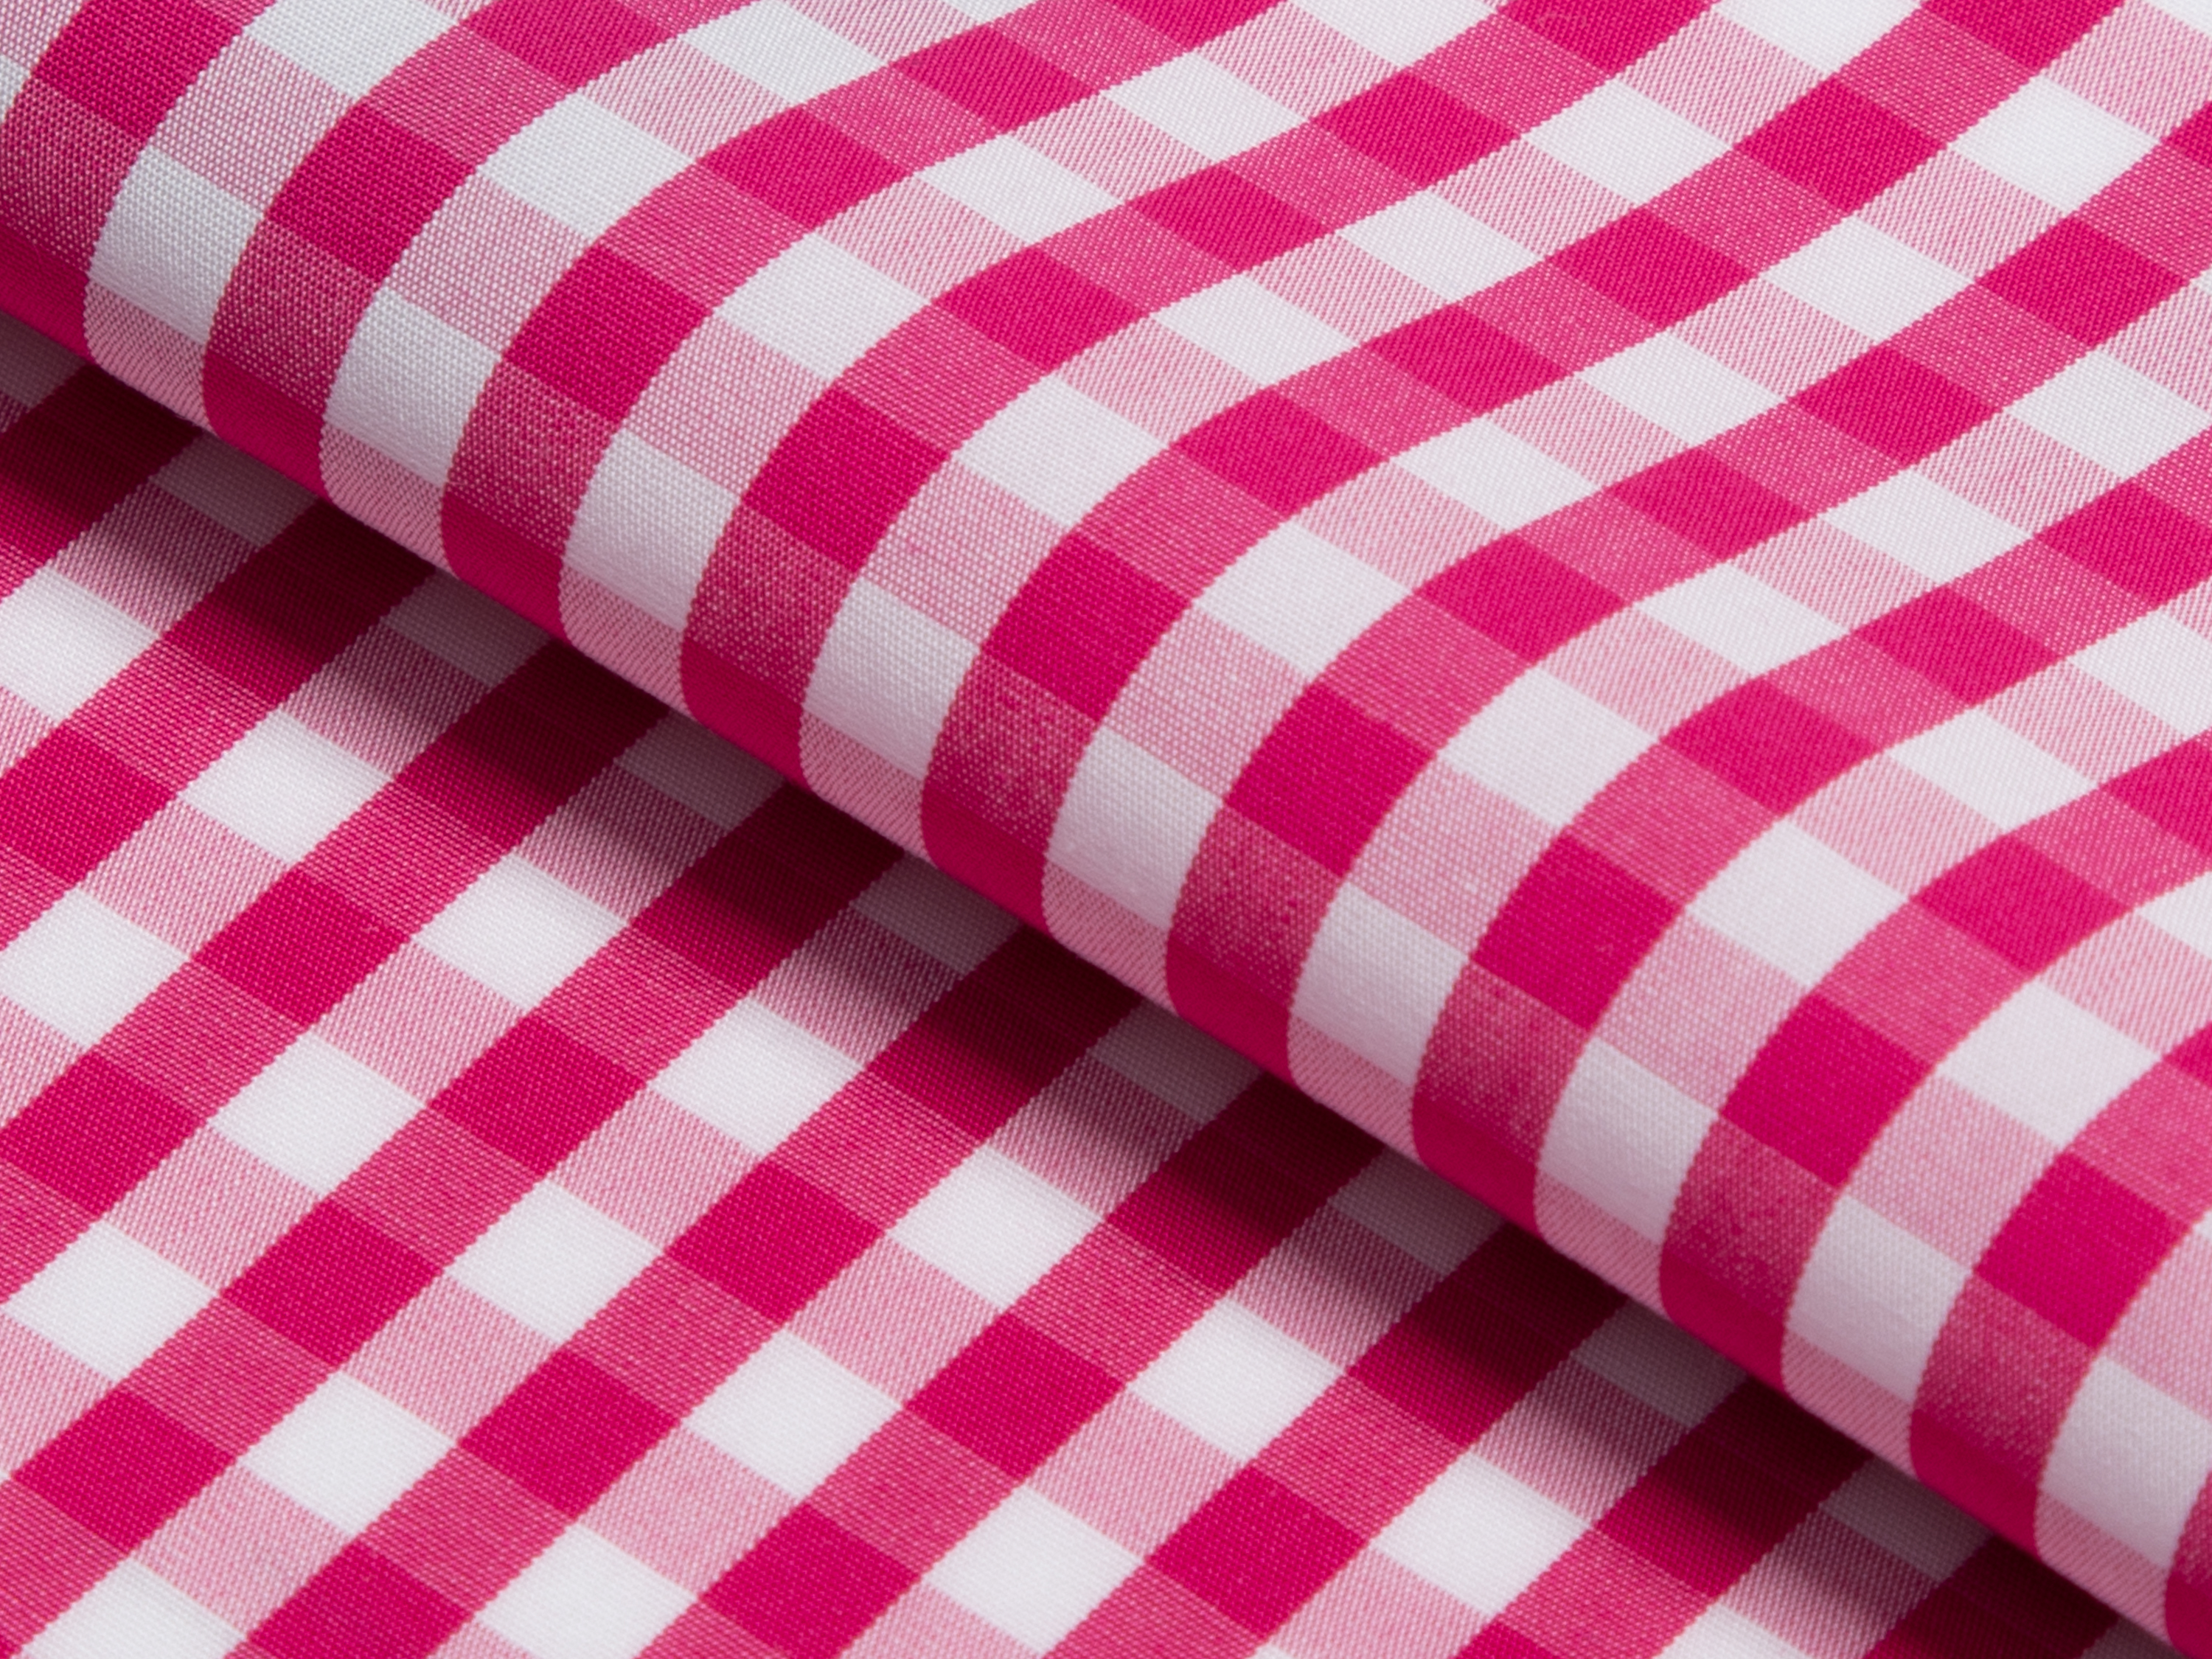 Buy tailor made shirts online - GINGHAM LUXURY (NEW) - Gingham Fuchsia